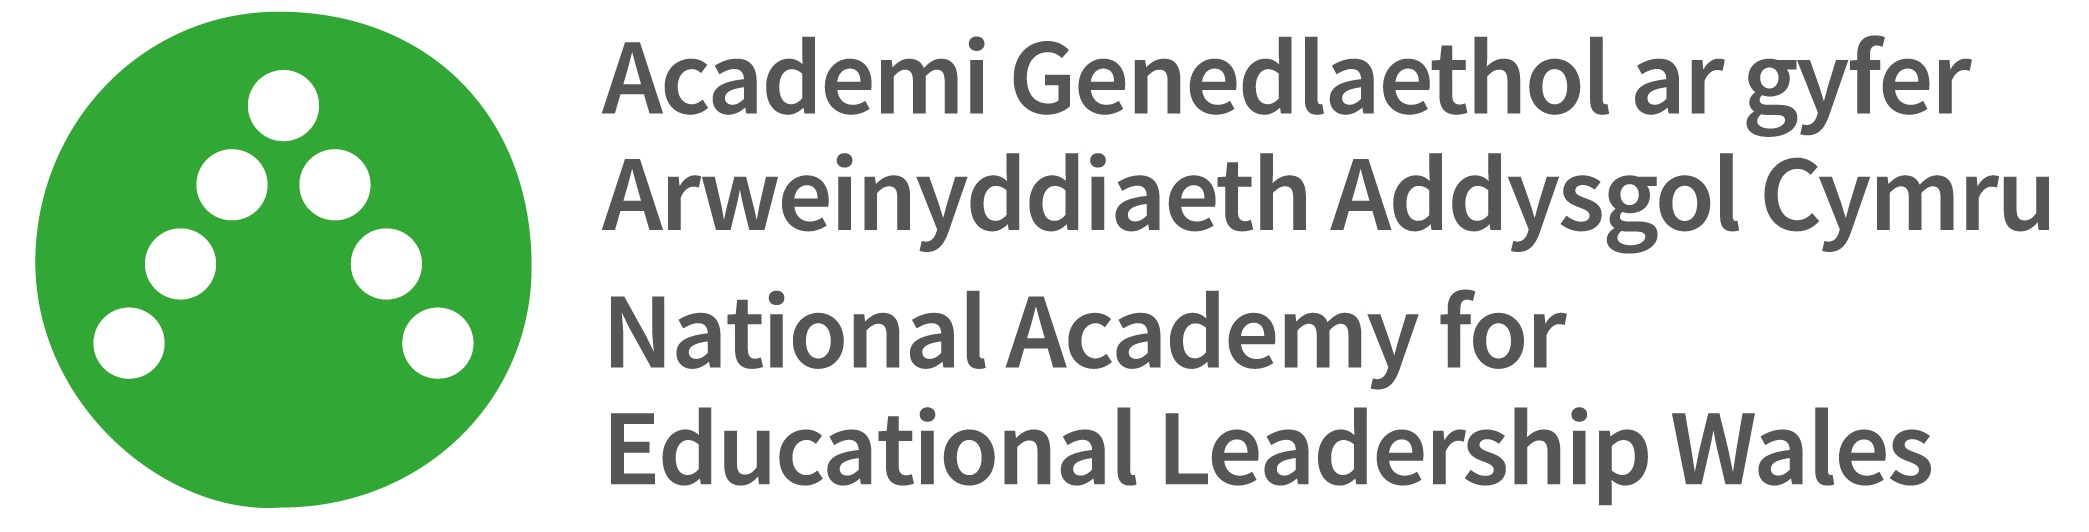 National Academy for Educational Leadership Wales